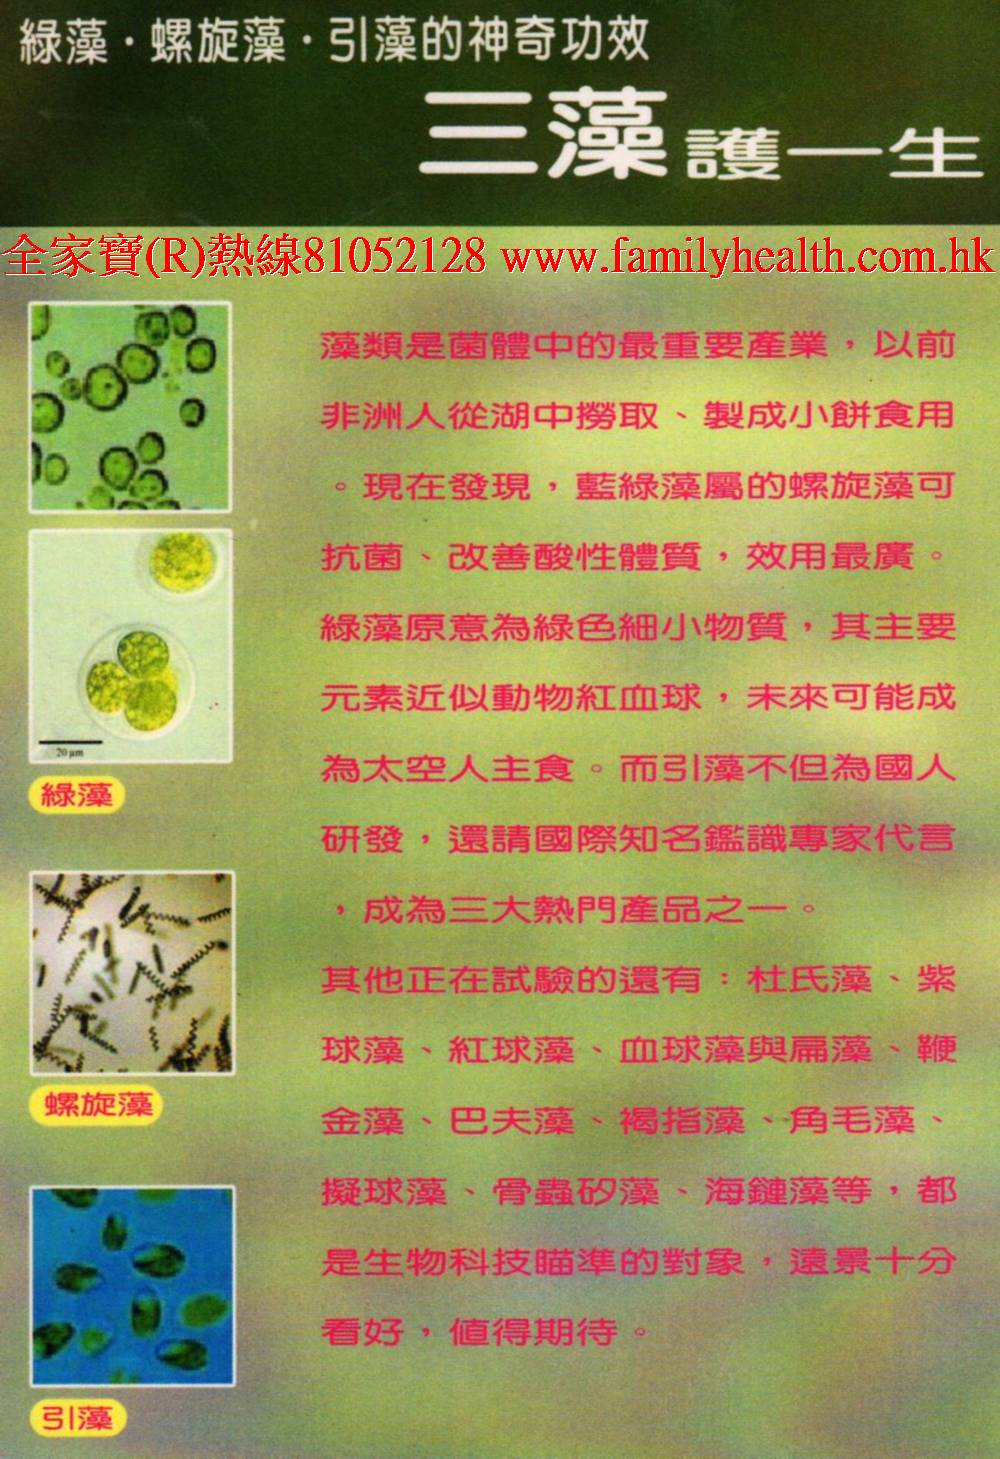 http://www.familyhealth.com.hk/files/full/932_1.jpg